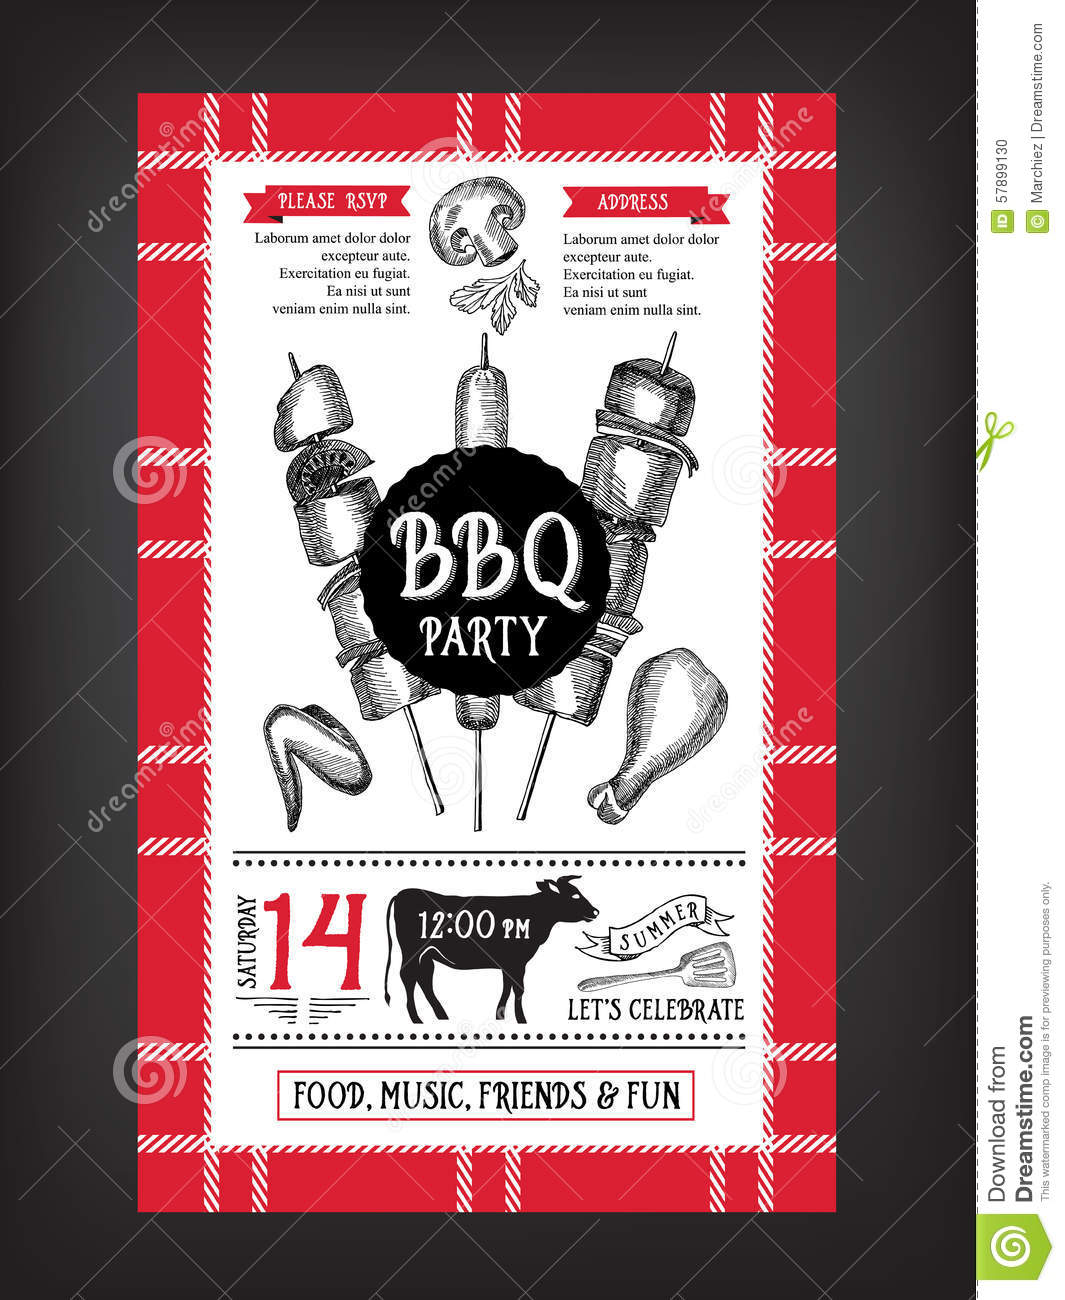 barbecue party invitation bbq template menu design food flyer stock vector image 57899130. Black Bedroom Furniture Sets. Home Design Ideas